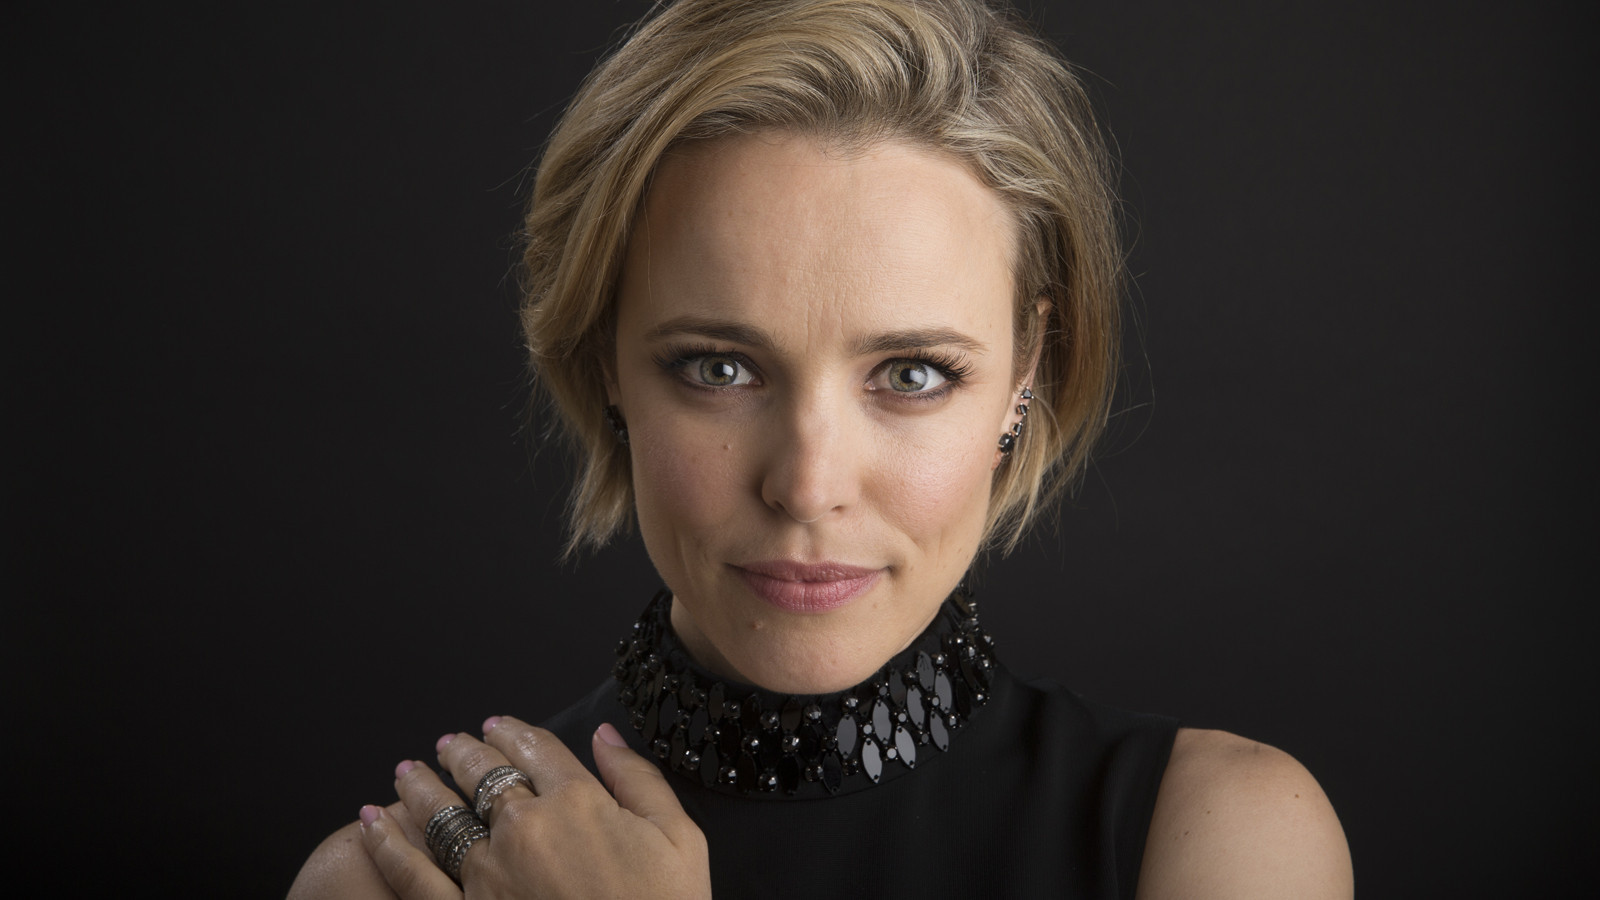 Rachel McAdams does fame her way - LA Times